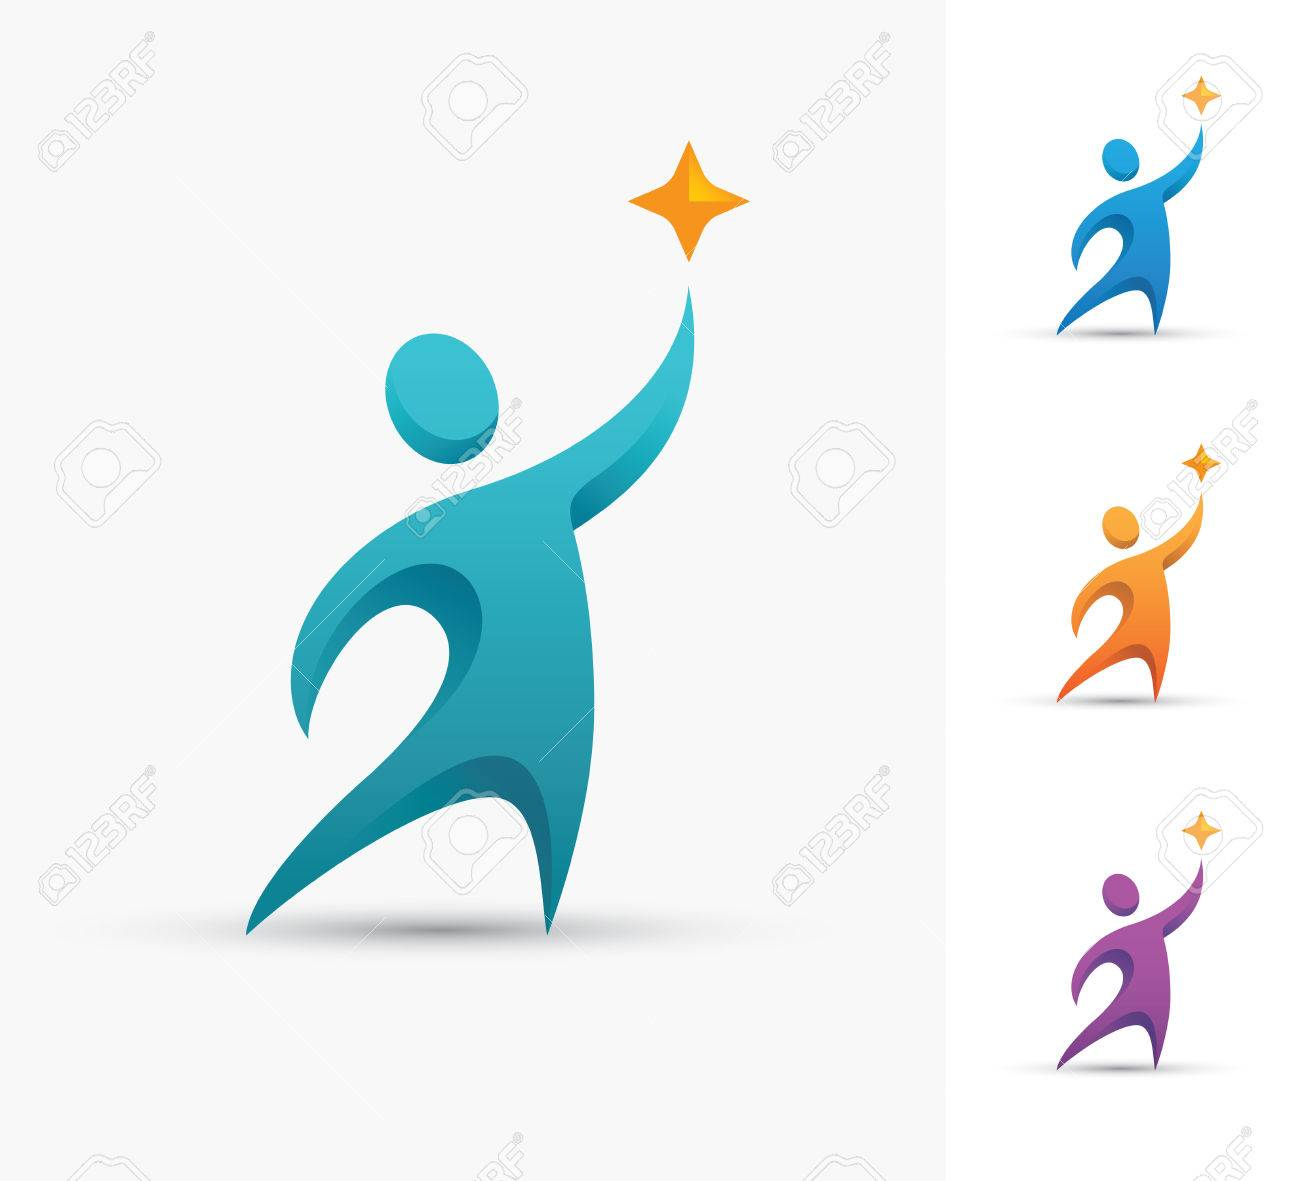 Human logo with star  Champion or winner icon  Success and successful